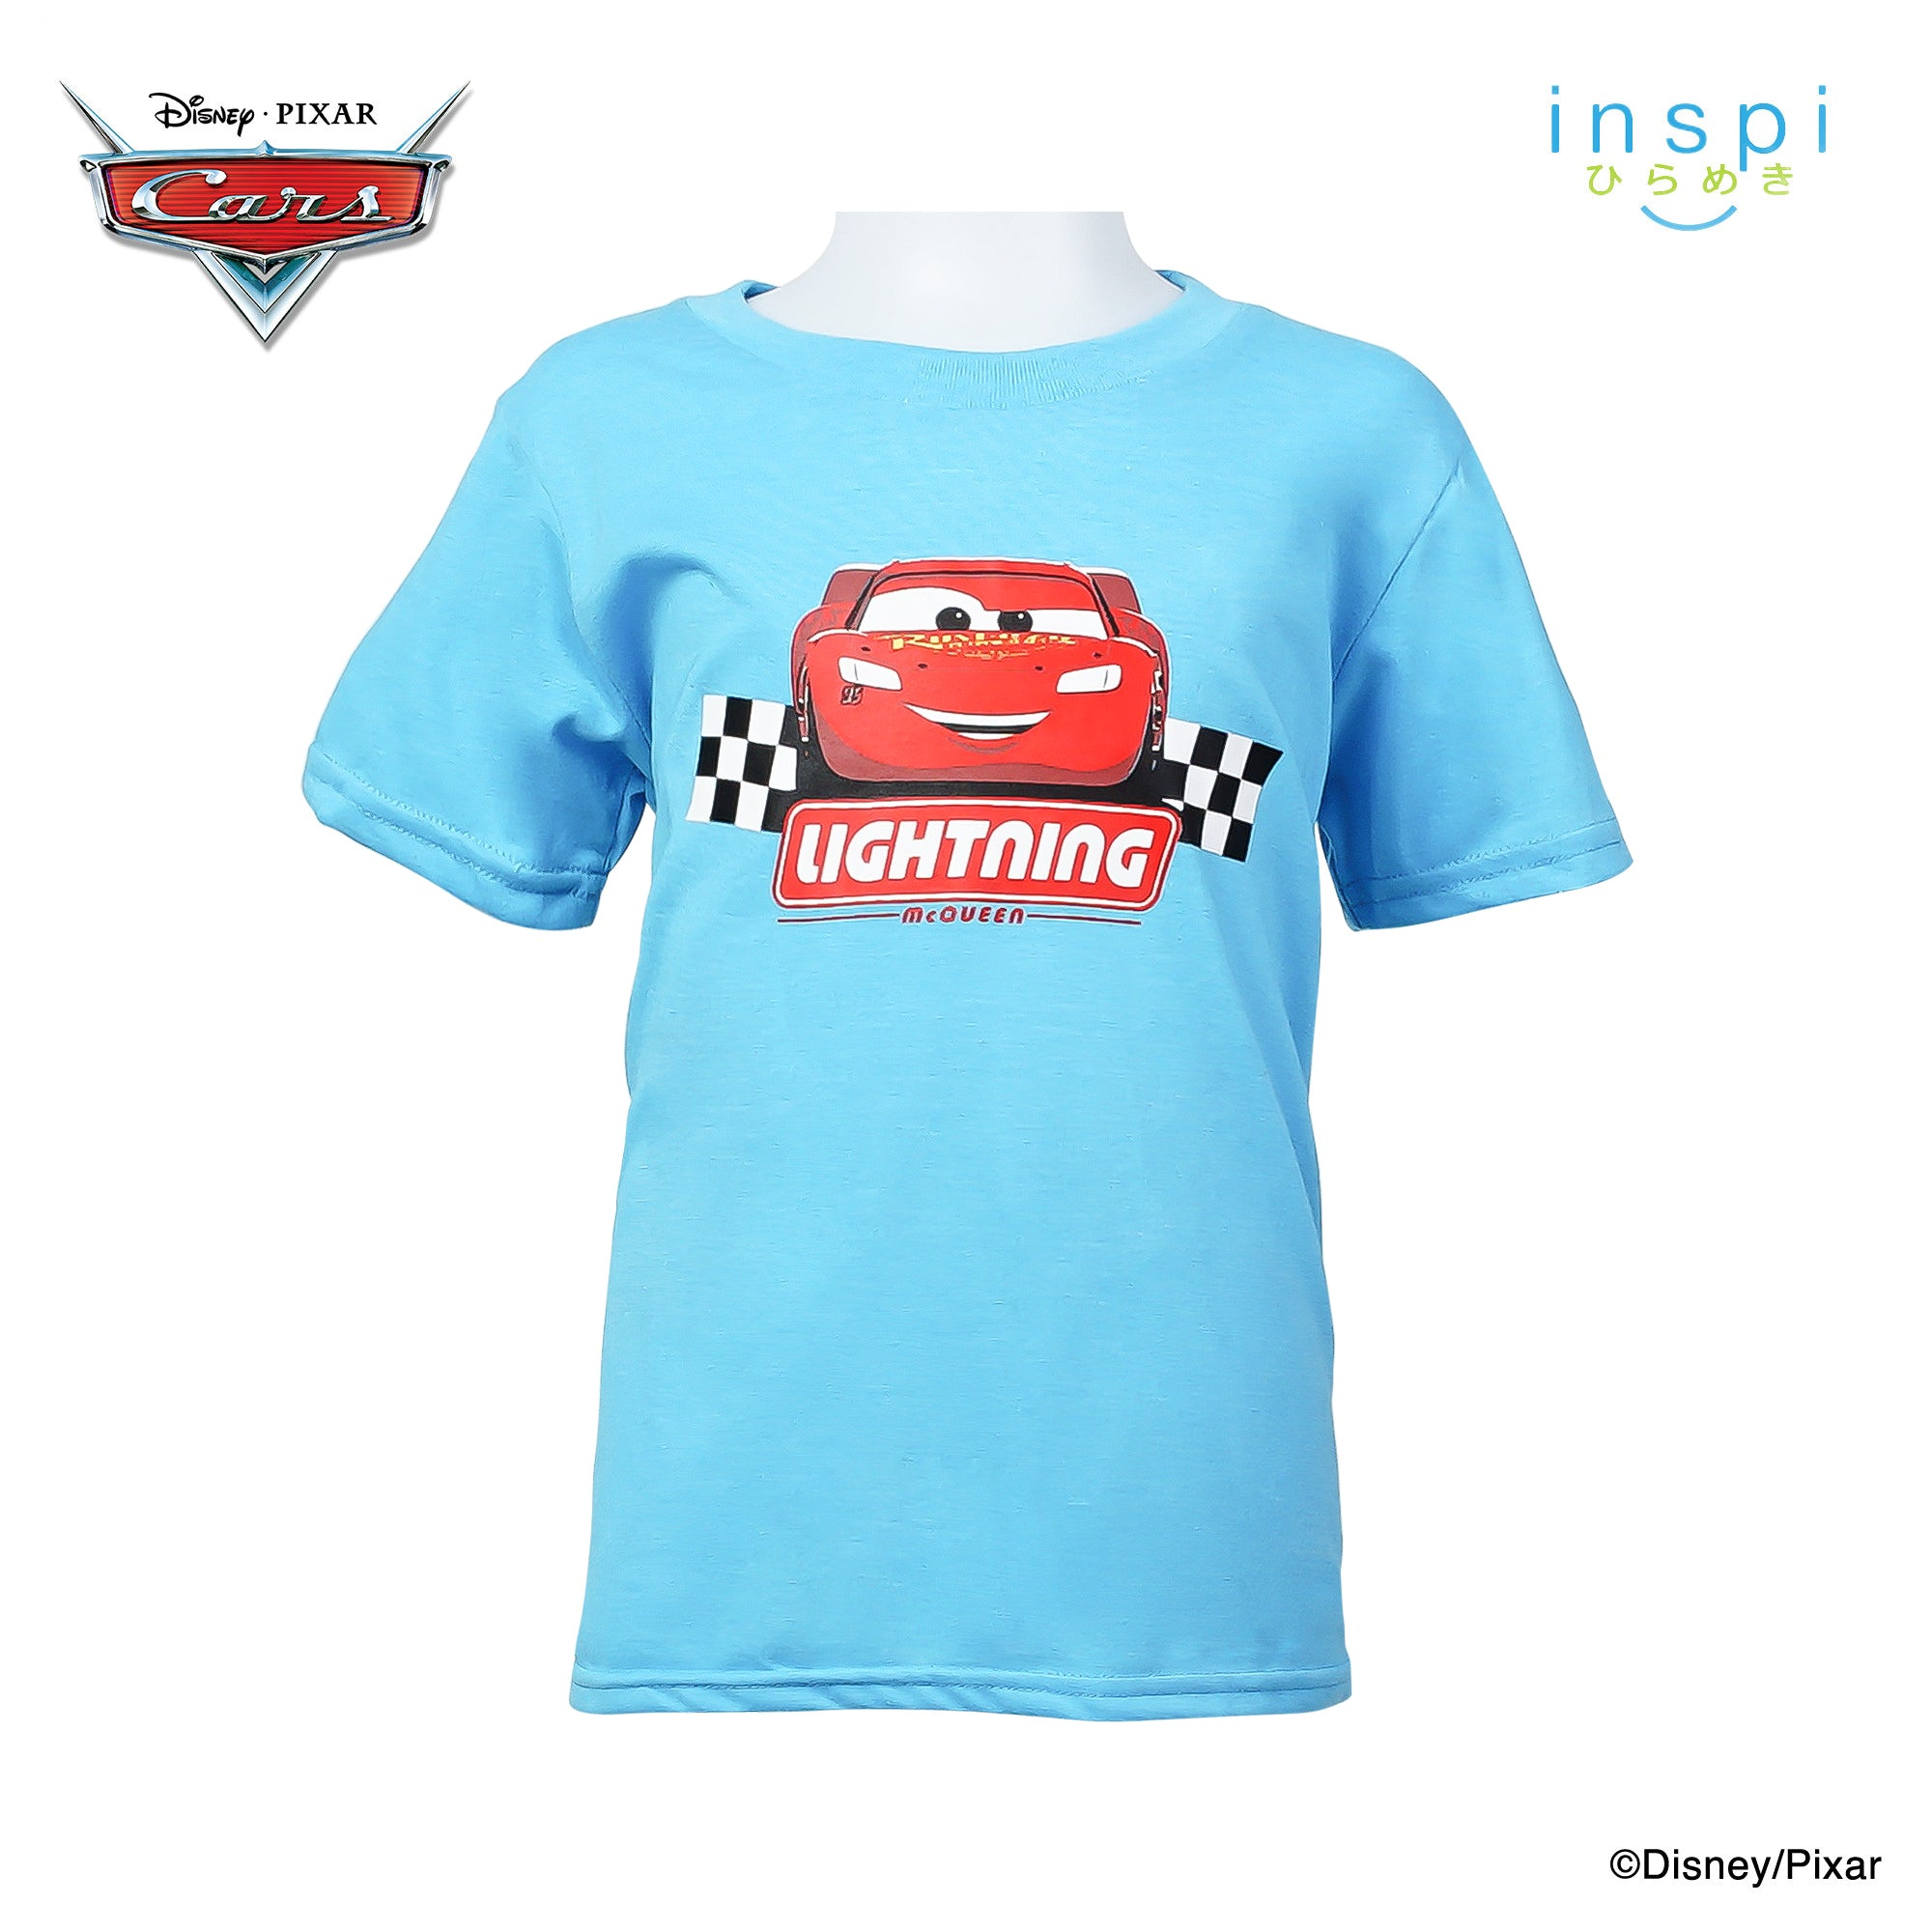 Disney Cars Lightning Mc Queen Tshirt in After Glow Aqua for Boys Inspi Shirt